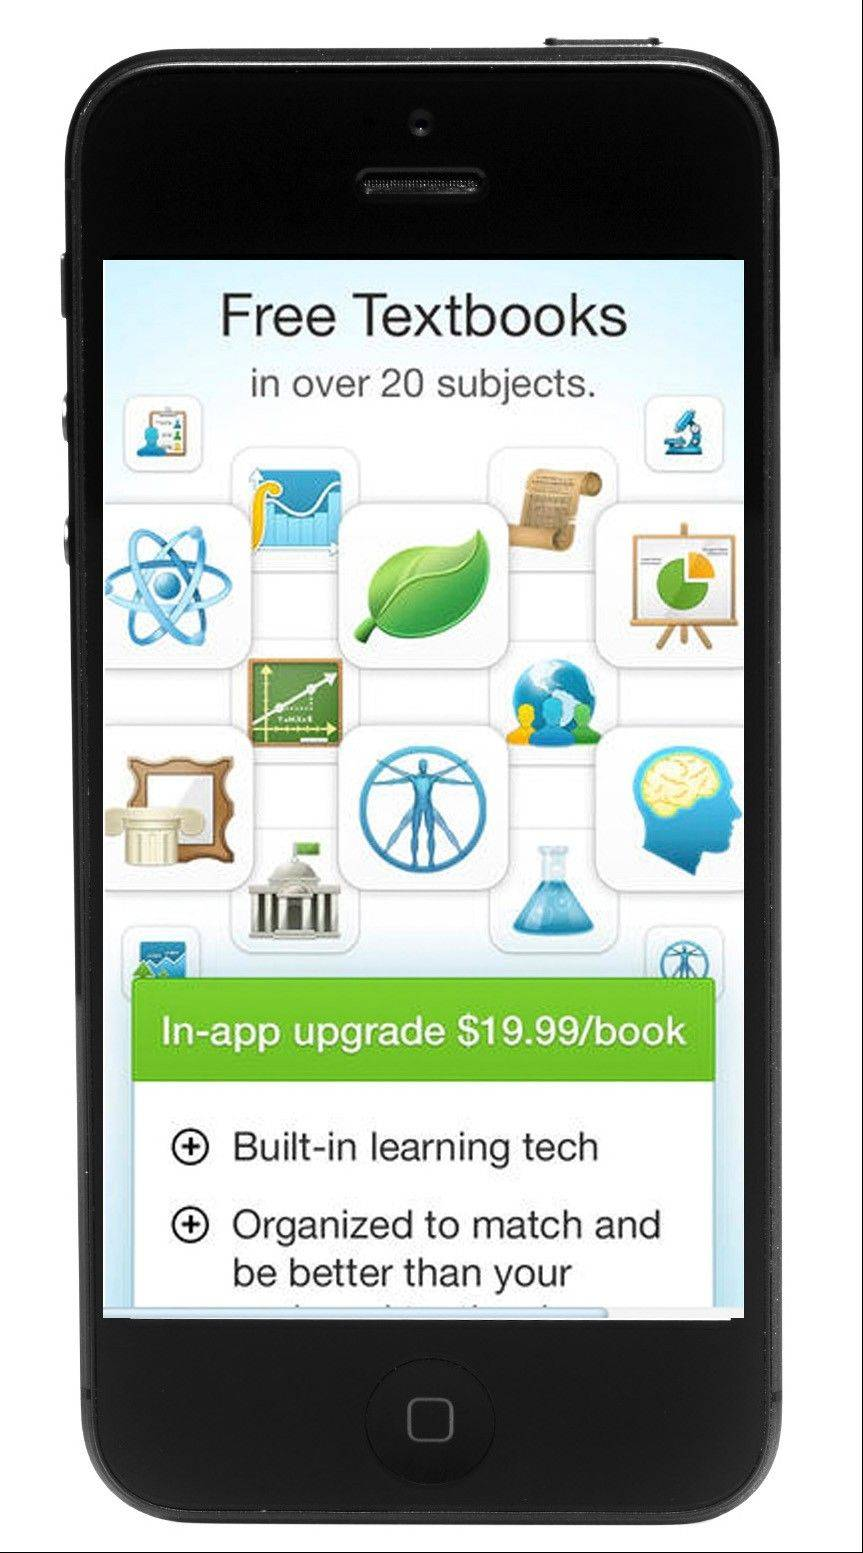 The Boundless app has set out to offer students low-cost alternatives to their traditional textbooks by collecting information and curating it into free or low-cost books.